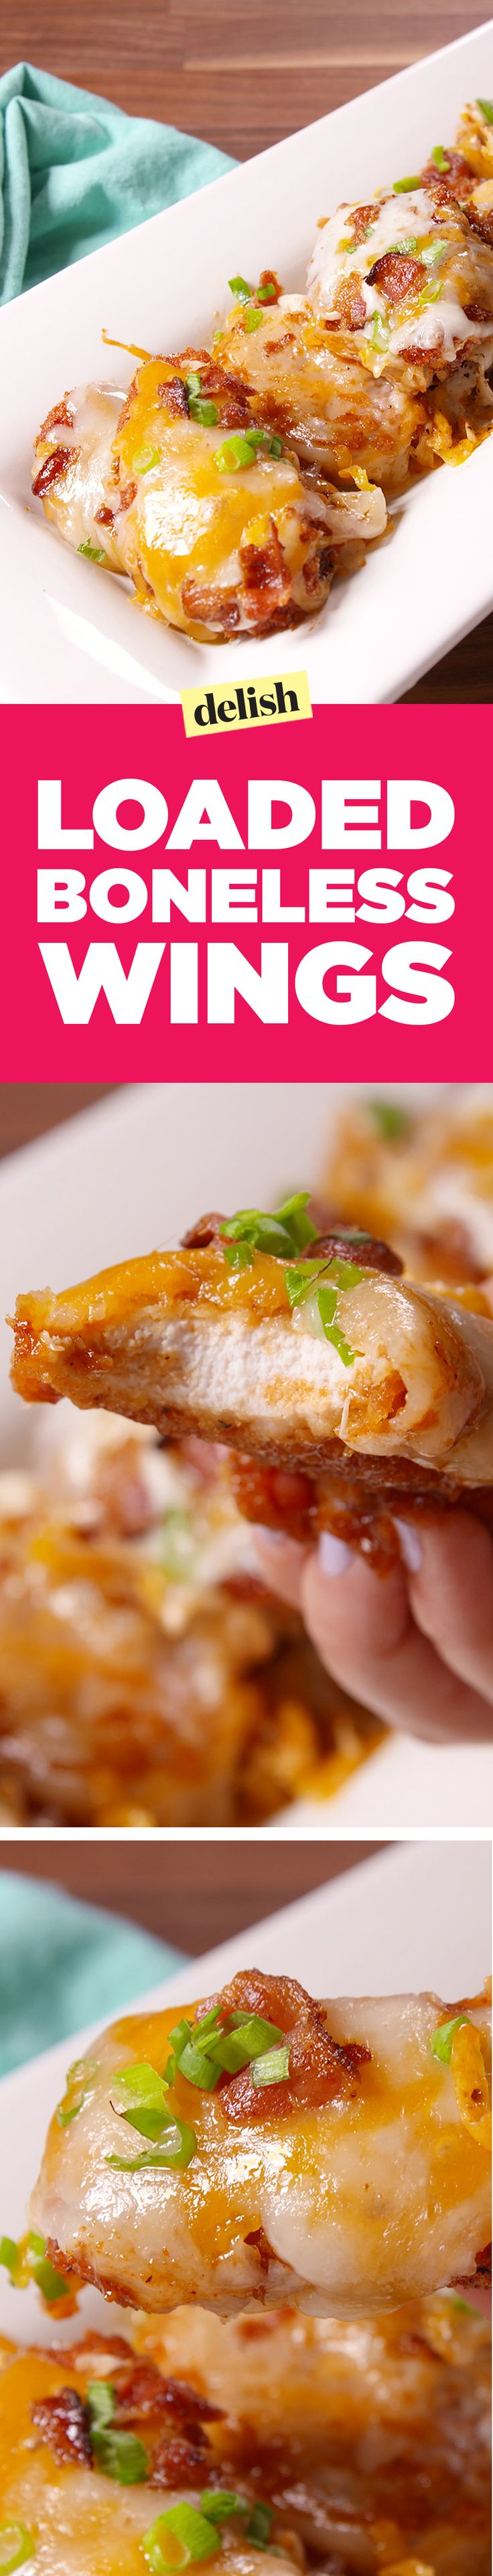 These loaded boneless wings will be your new favorite party trick for fall. Get the recipe on Delish.com.